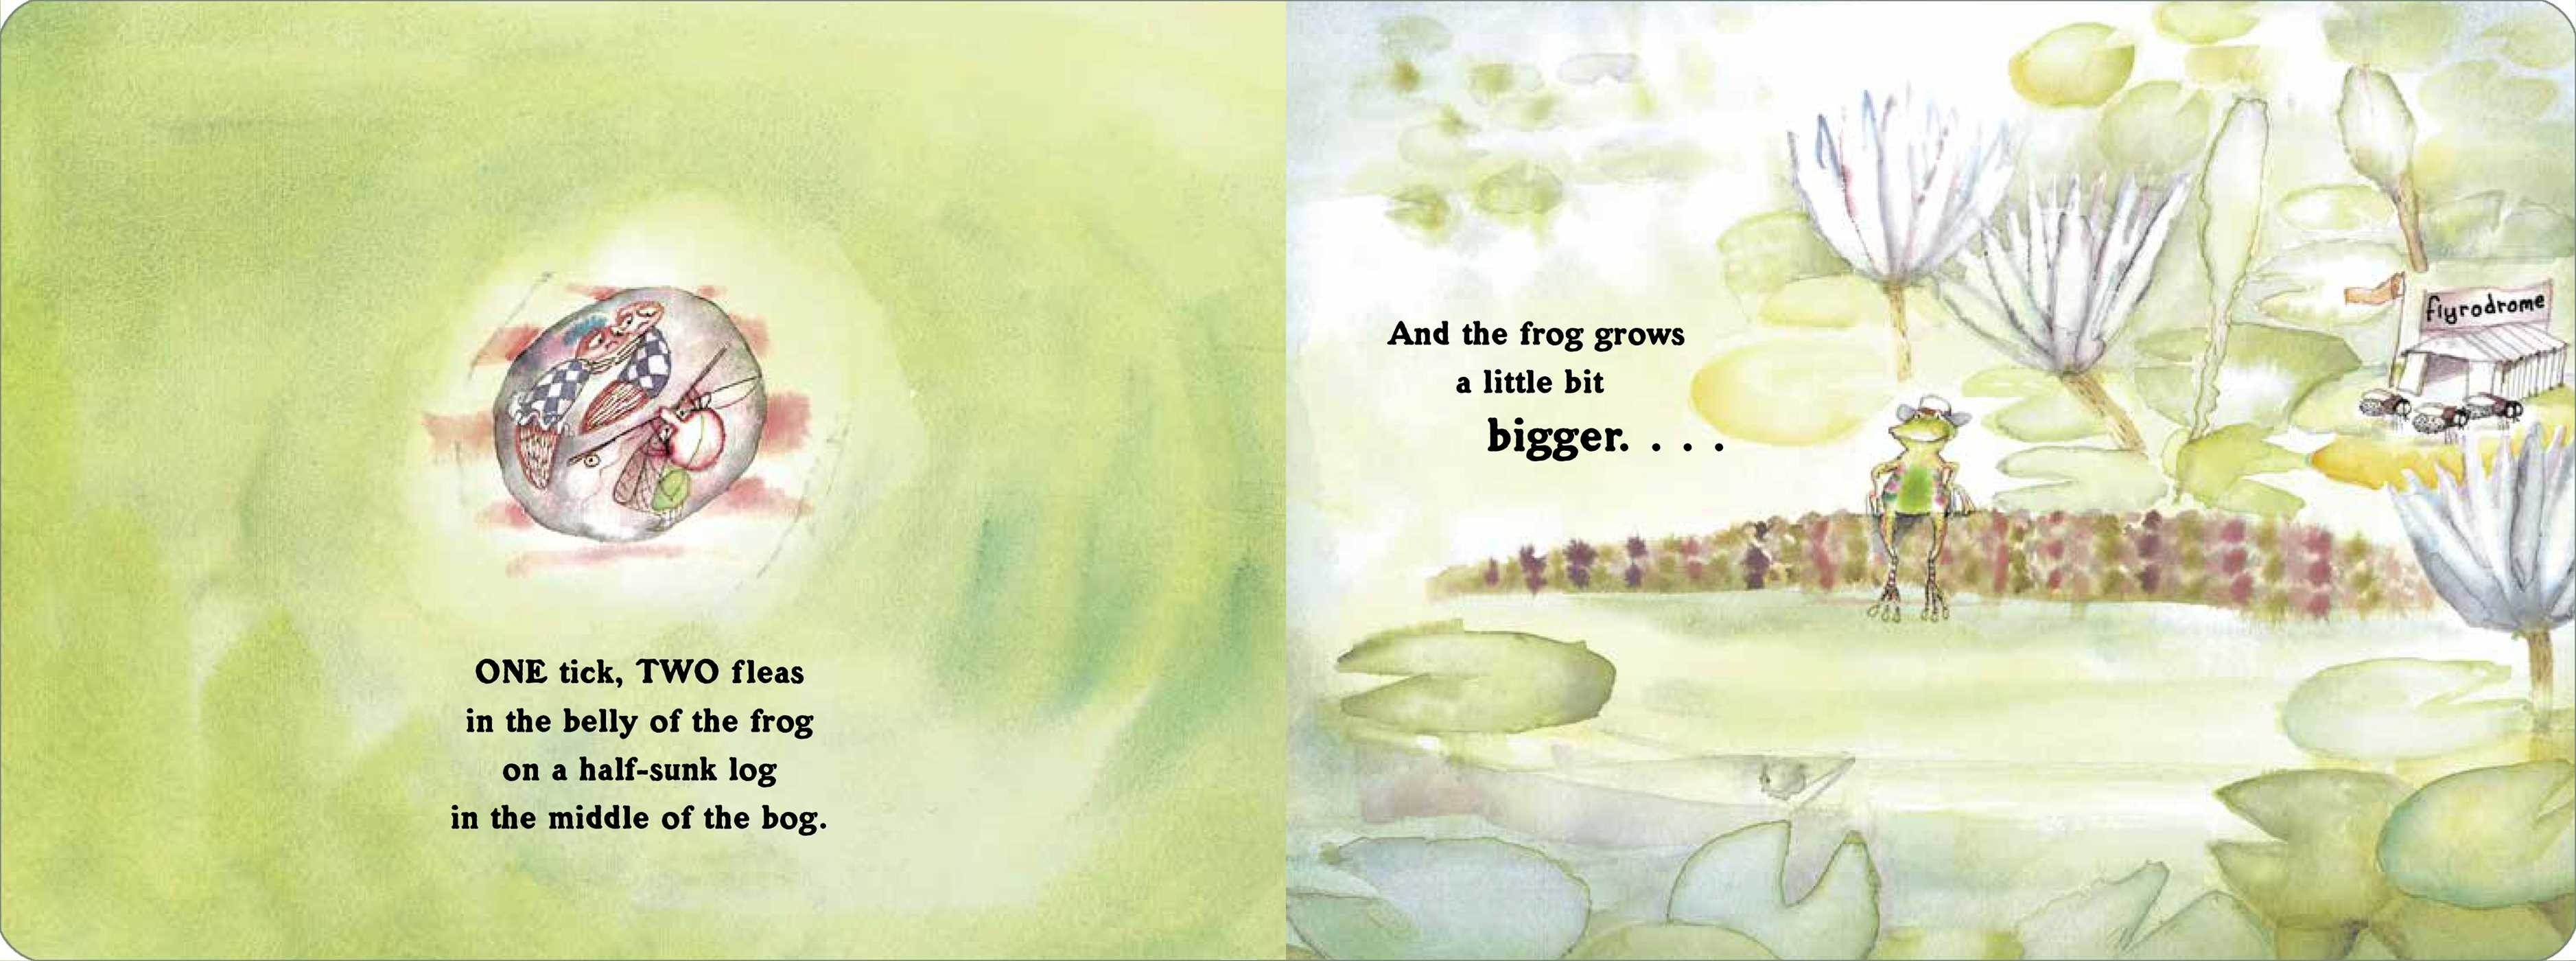 A frog in the bog 9781481444521.in04